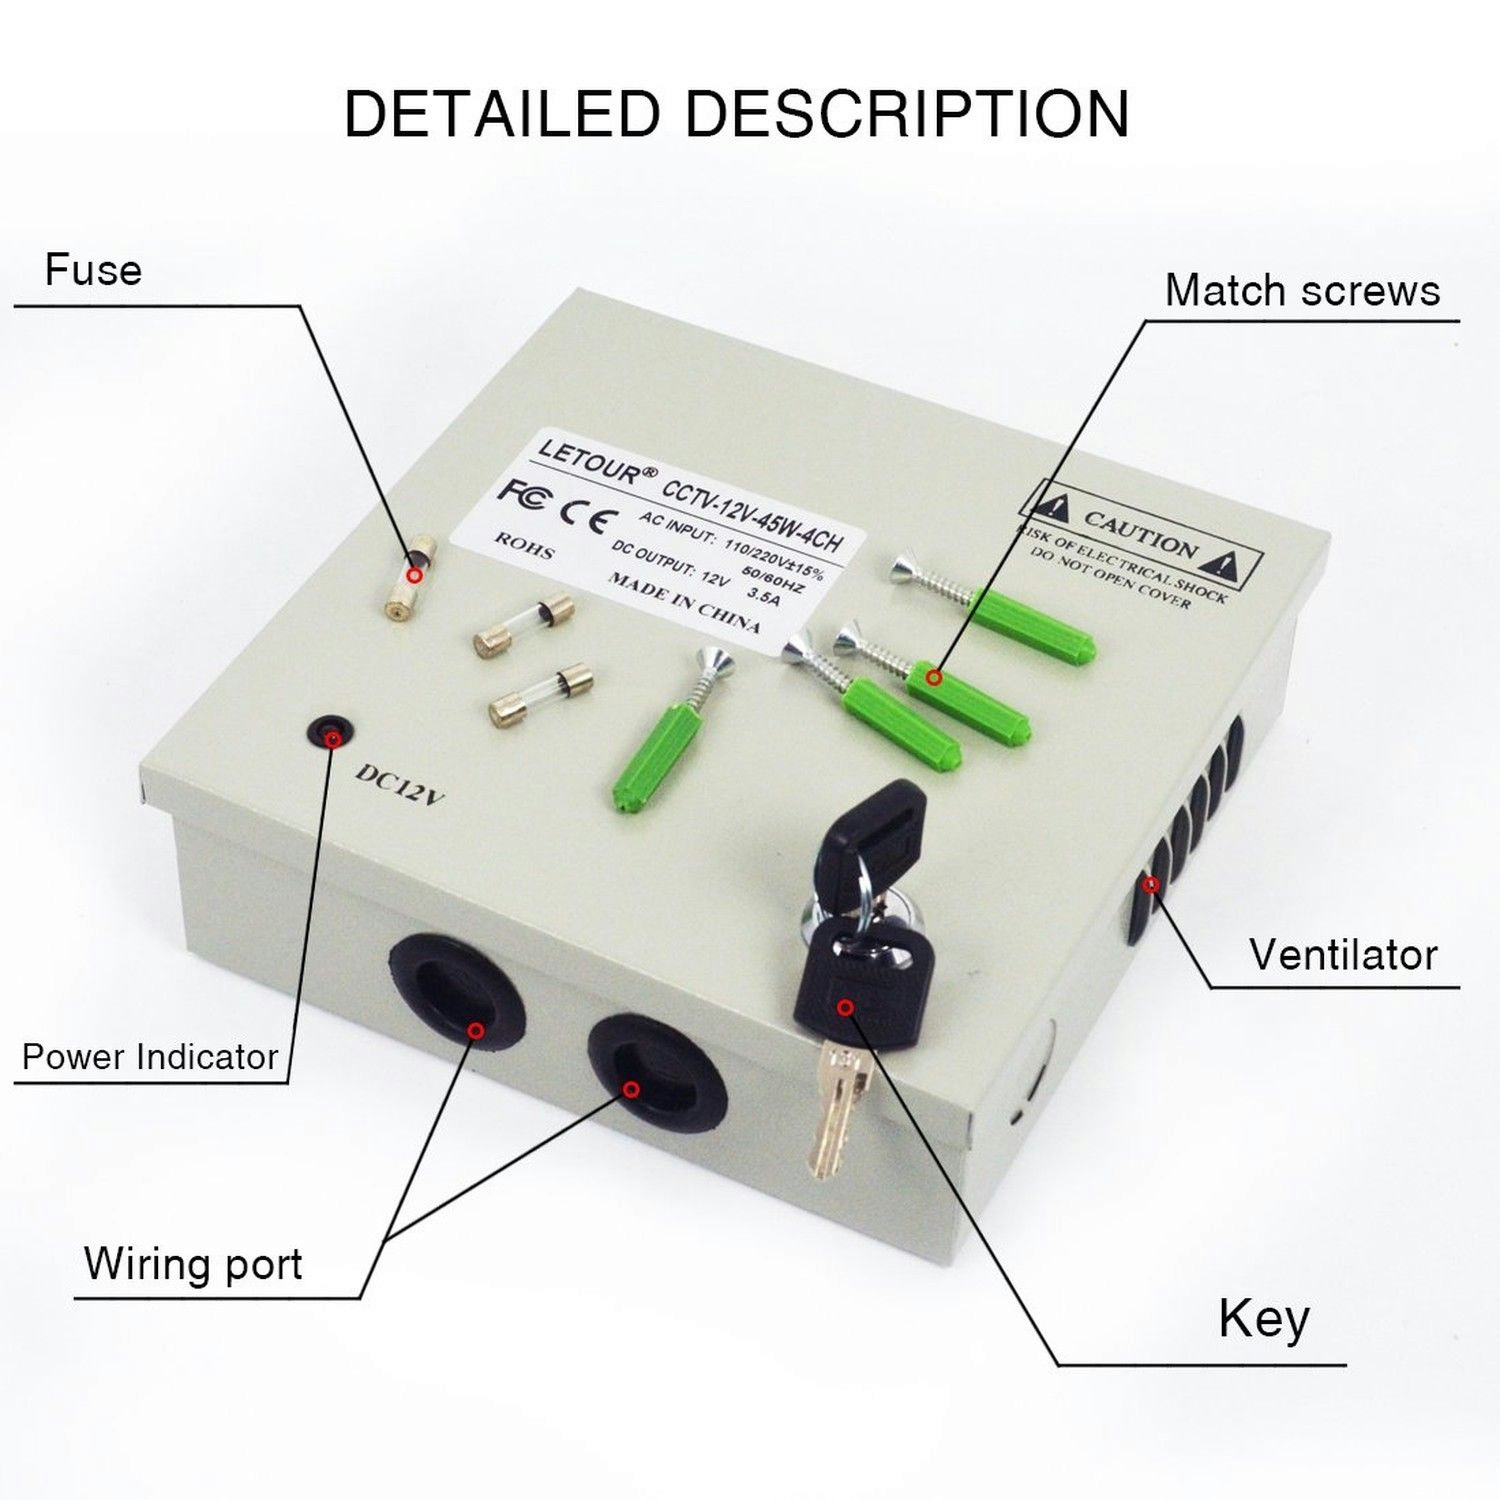 LETOUR Power Supply Box 4 Channels CCTV Box Security Camera (4CH 3.5A 45W)